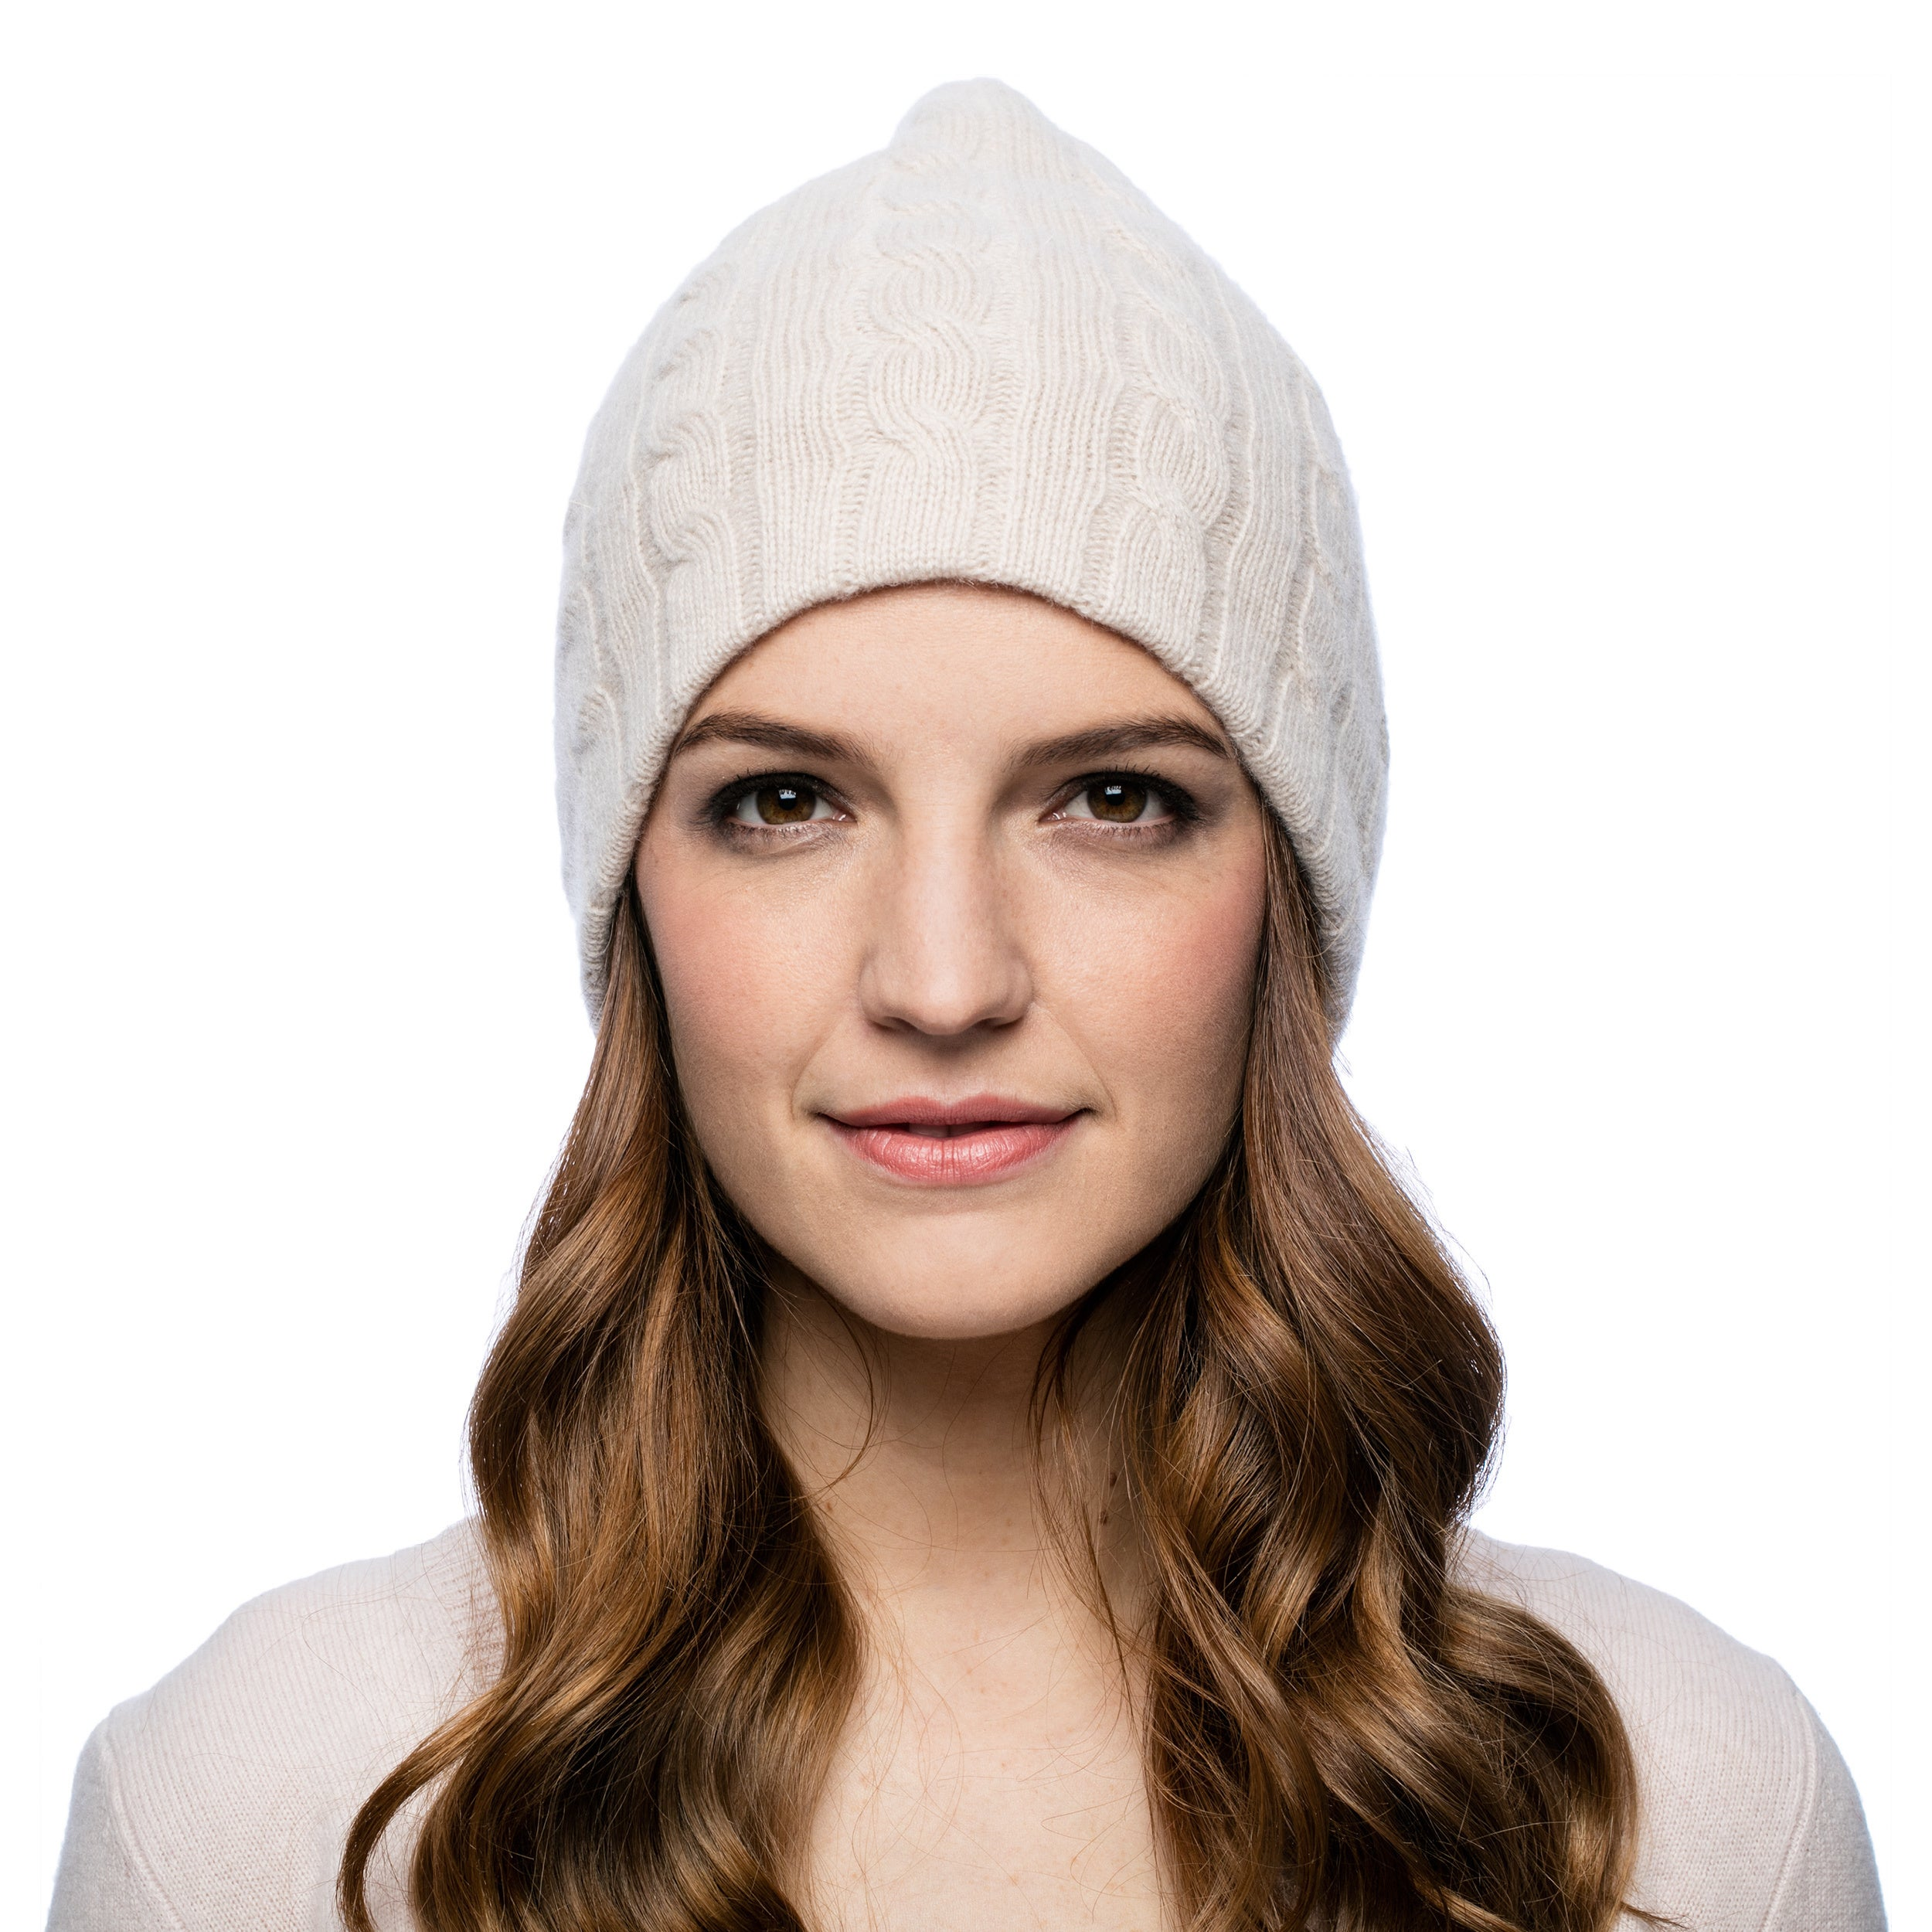 39230cfd2e400 Shop Enzo Mantovani Women s Cashmere Blend Hat and Glove Set - Free  Shipping On Orders Over  45 - Overstock - 10771667